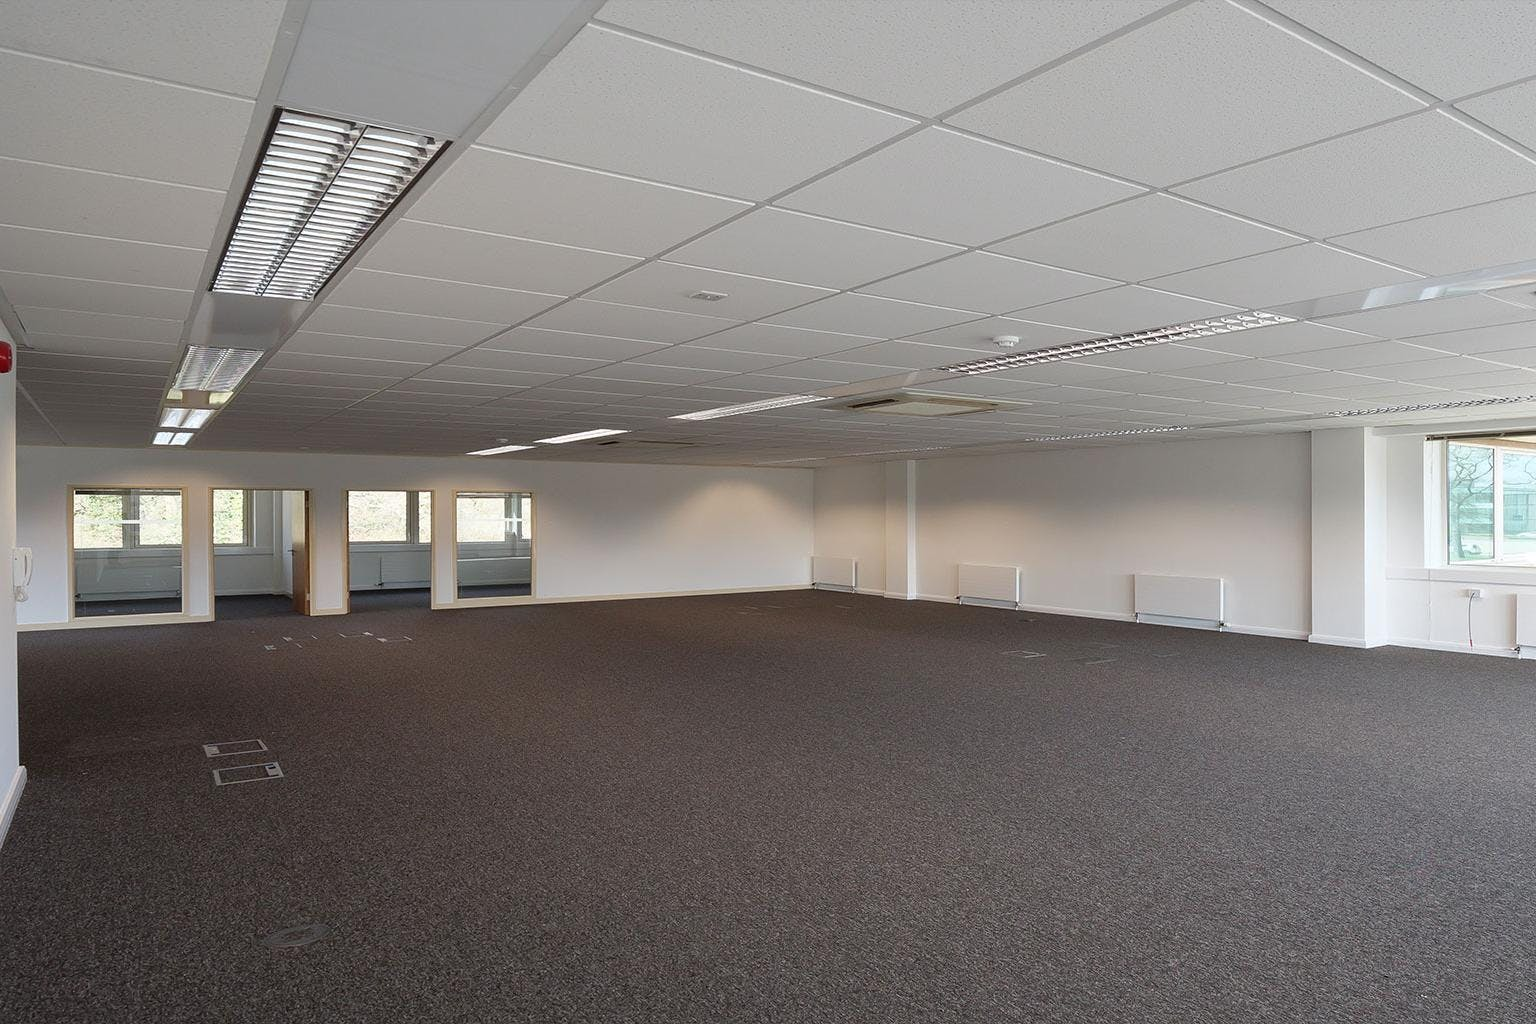 4 Lindenwood, Basingstoke, Office To Let - 5-6-Lindenwood_4-1024x512@2x.jpg